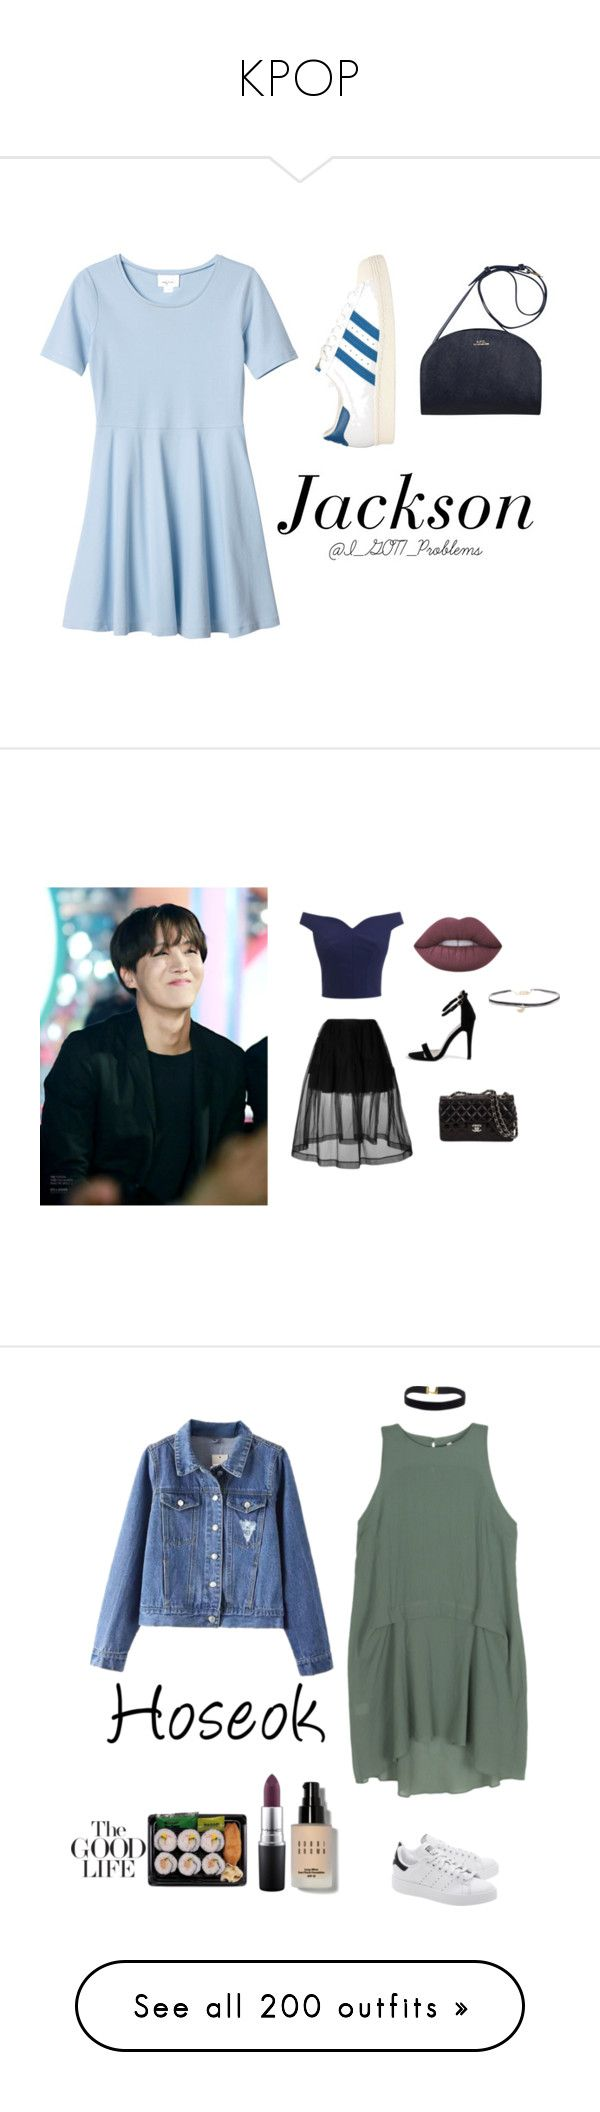 """""""KPOP"""" by snakecharmer2001 ❤ liked on Polyvore featuring Monki, adidas Originals, Jackson, GOT7, Simone Rocha, Humble Chic, Boohoo, Lime Crime, Bodkin and Bobbi Brown Cosmetics"""